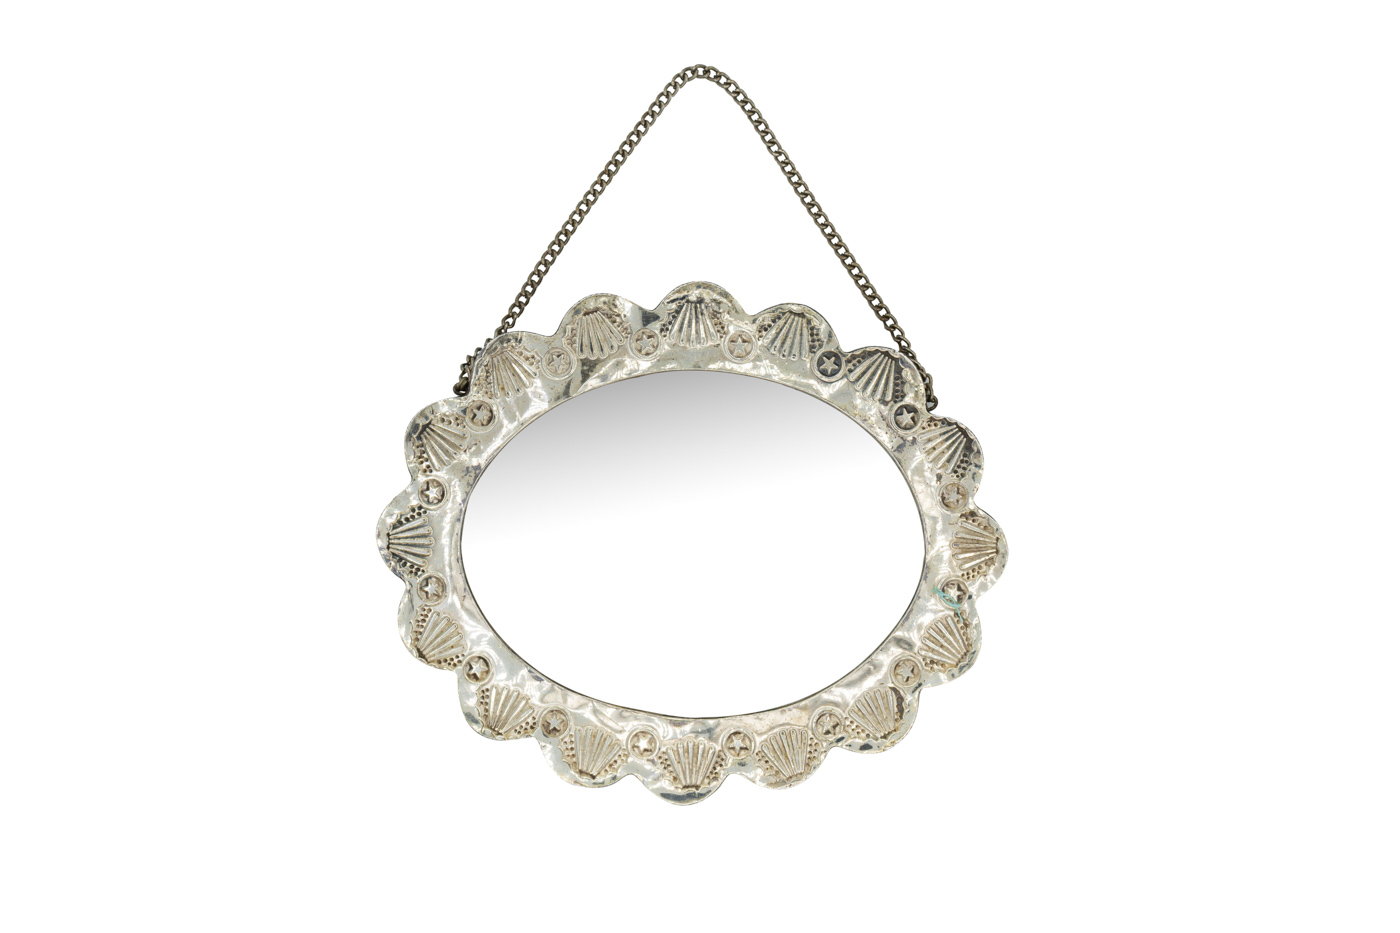 Turkish silver-oval wall-hanging mirror